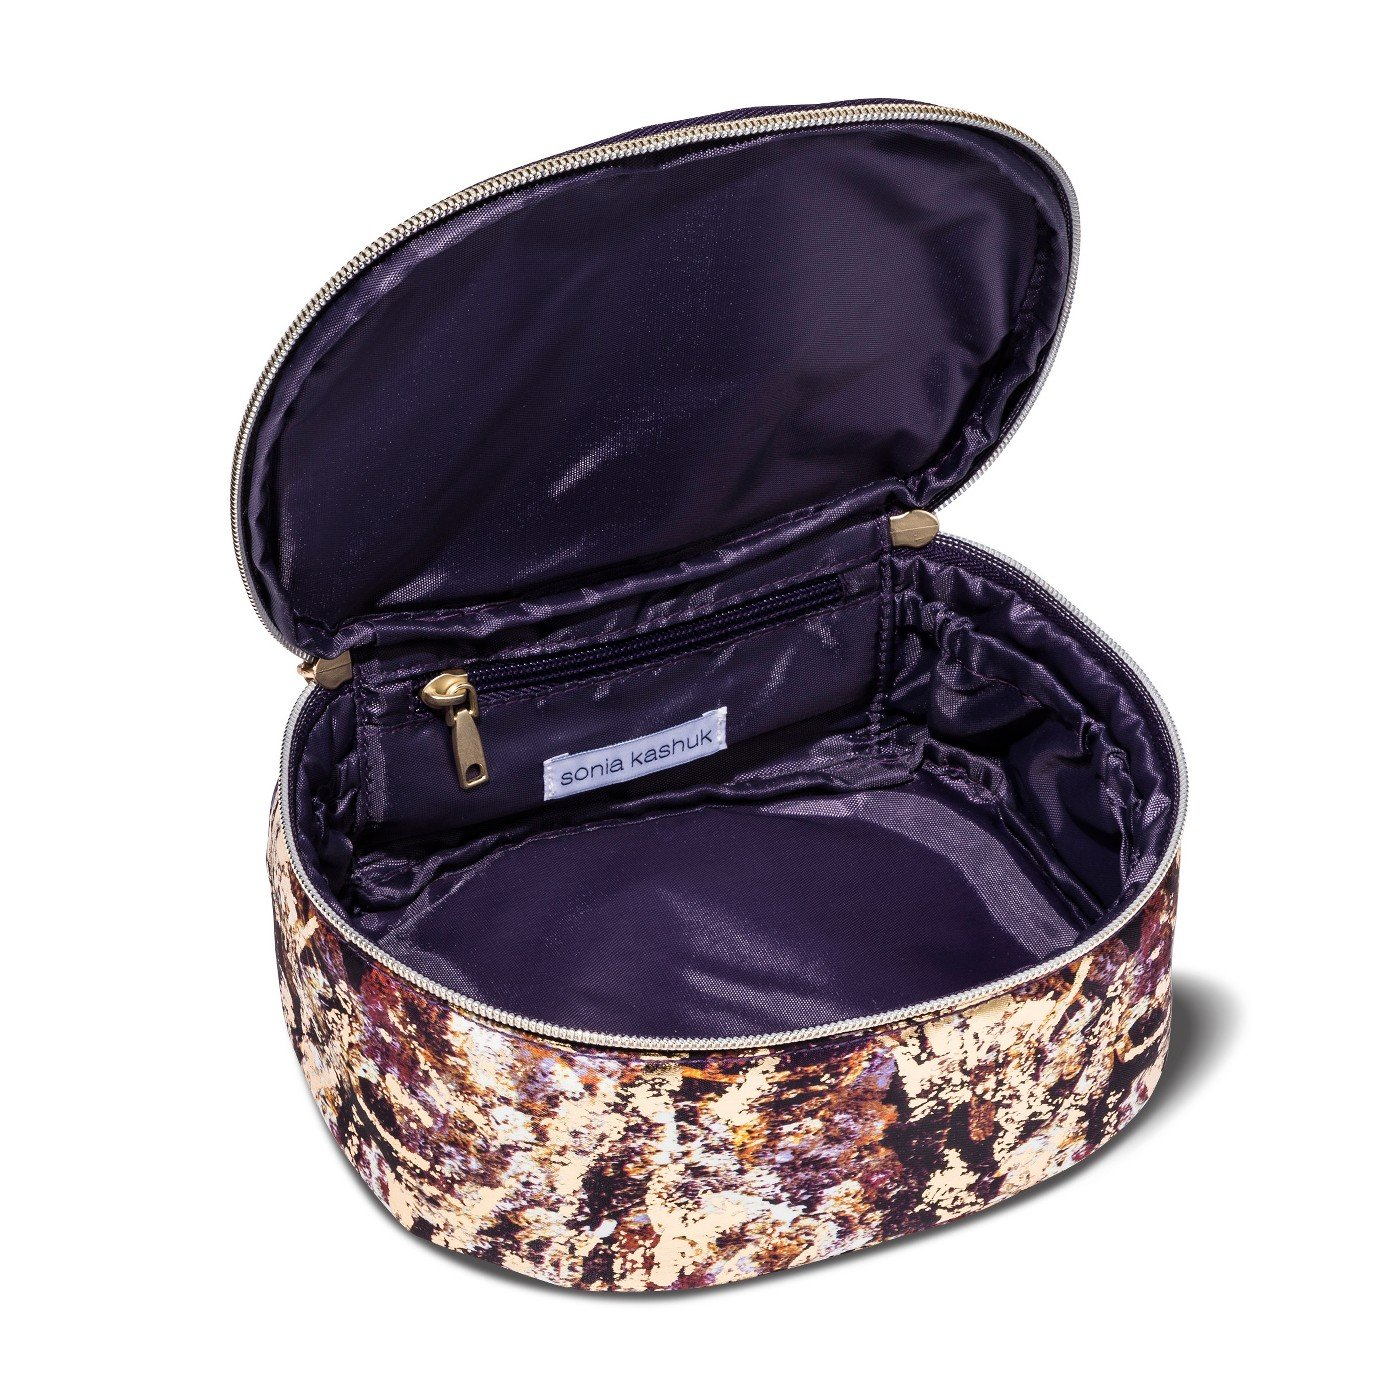 Sonia Kashuk153; Cosmetic Bag Saddle Bag Distress Floral with Foil MULTI-COLORED